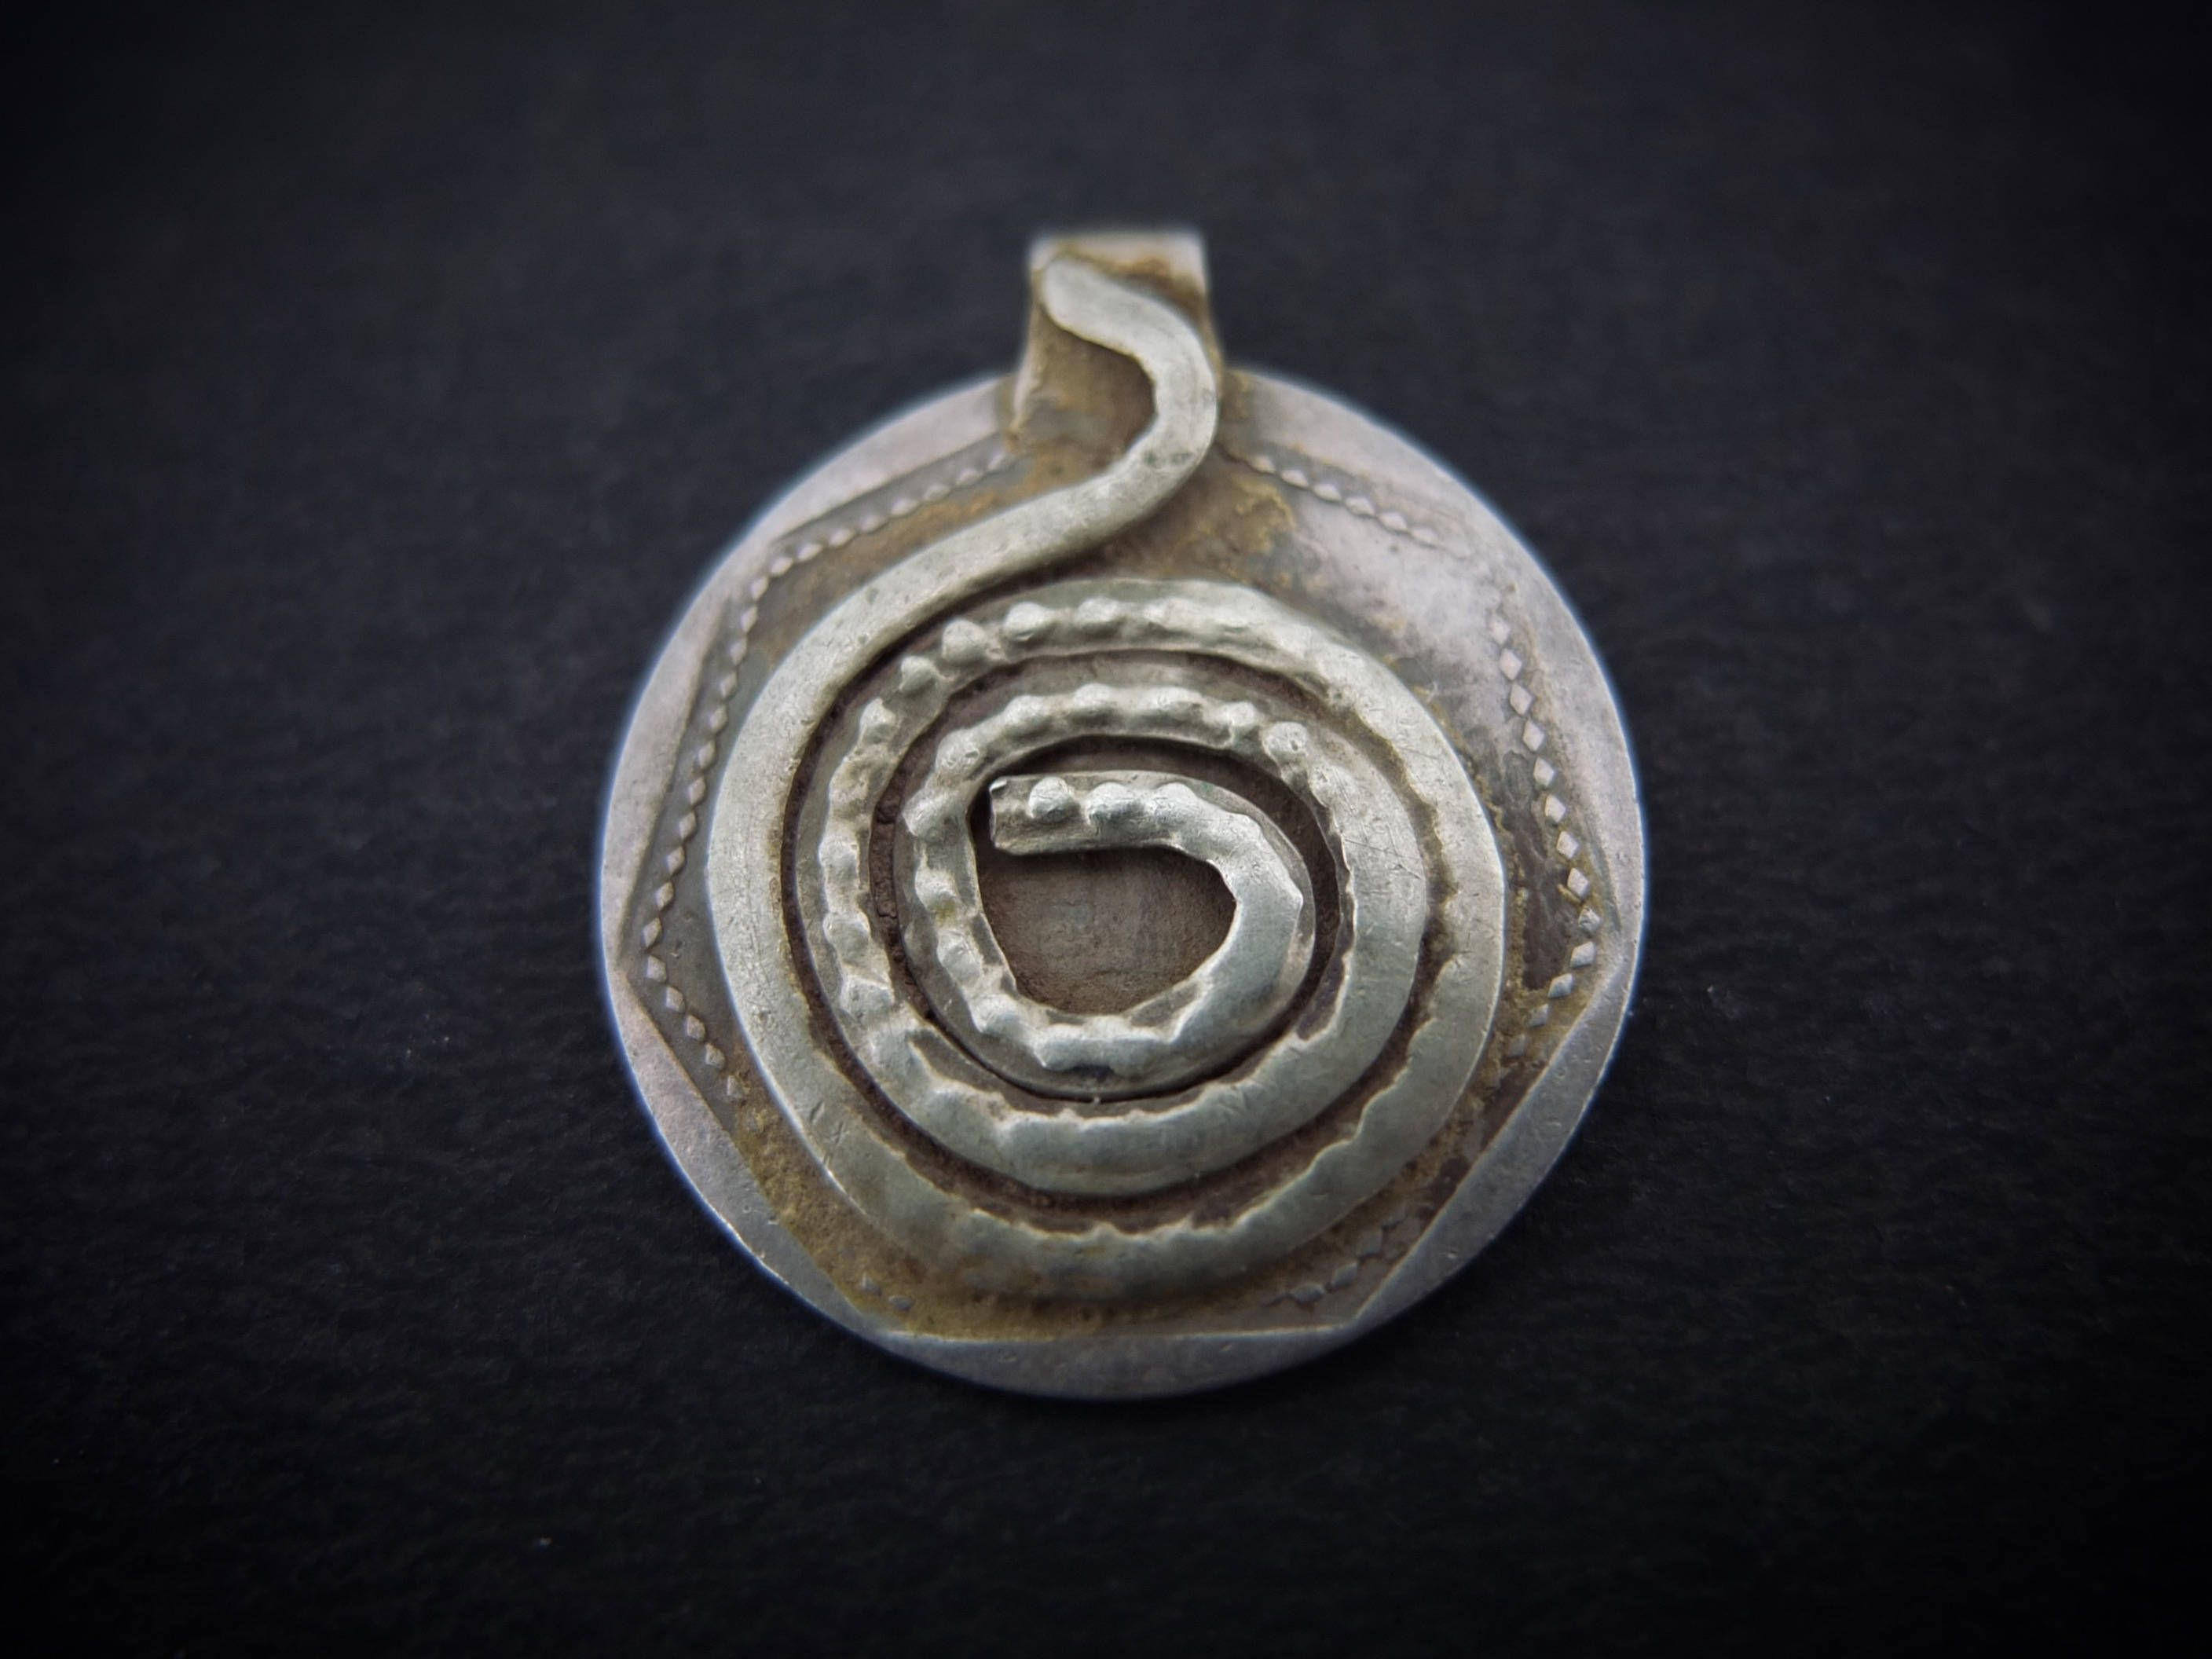 Naga snake pendant on old coin from india tribal gypsy jewelry naga snake pendant on old coin from india tribal gypsy jewelry rajasthan ethnic pendant aloadofball Images